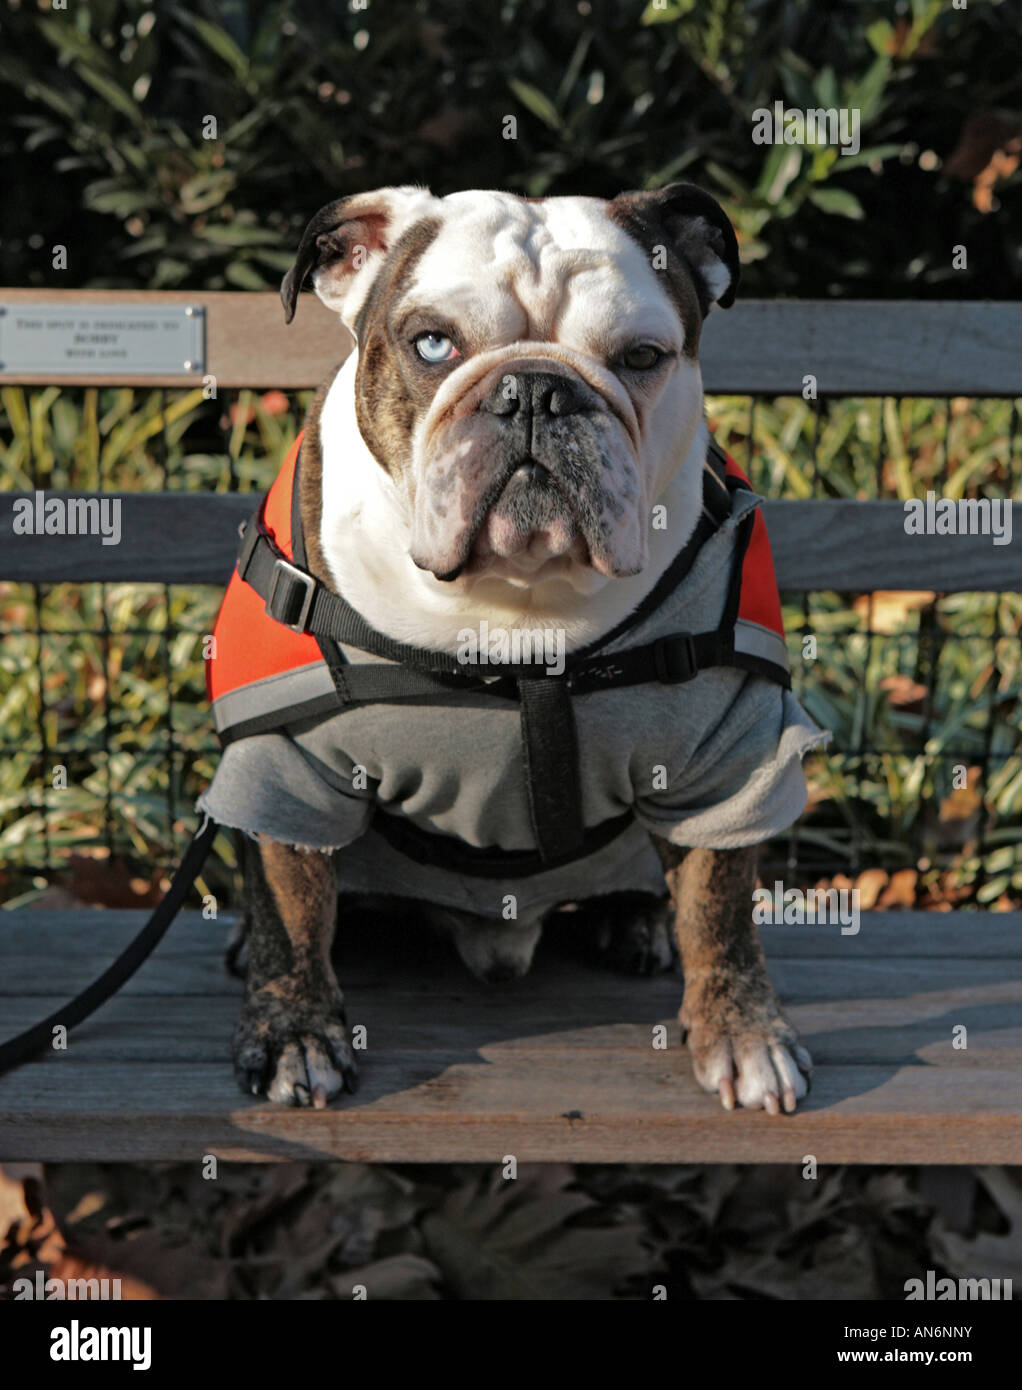 Bulldog takes a rest on park bench - Stock Image